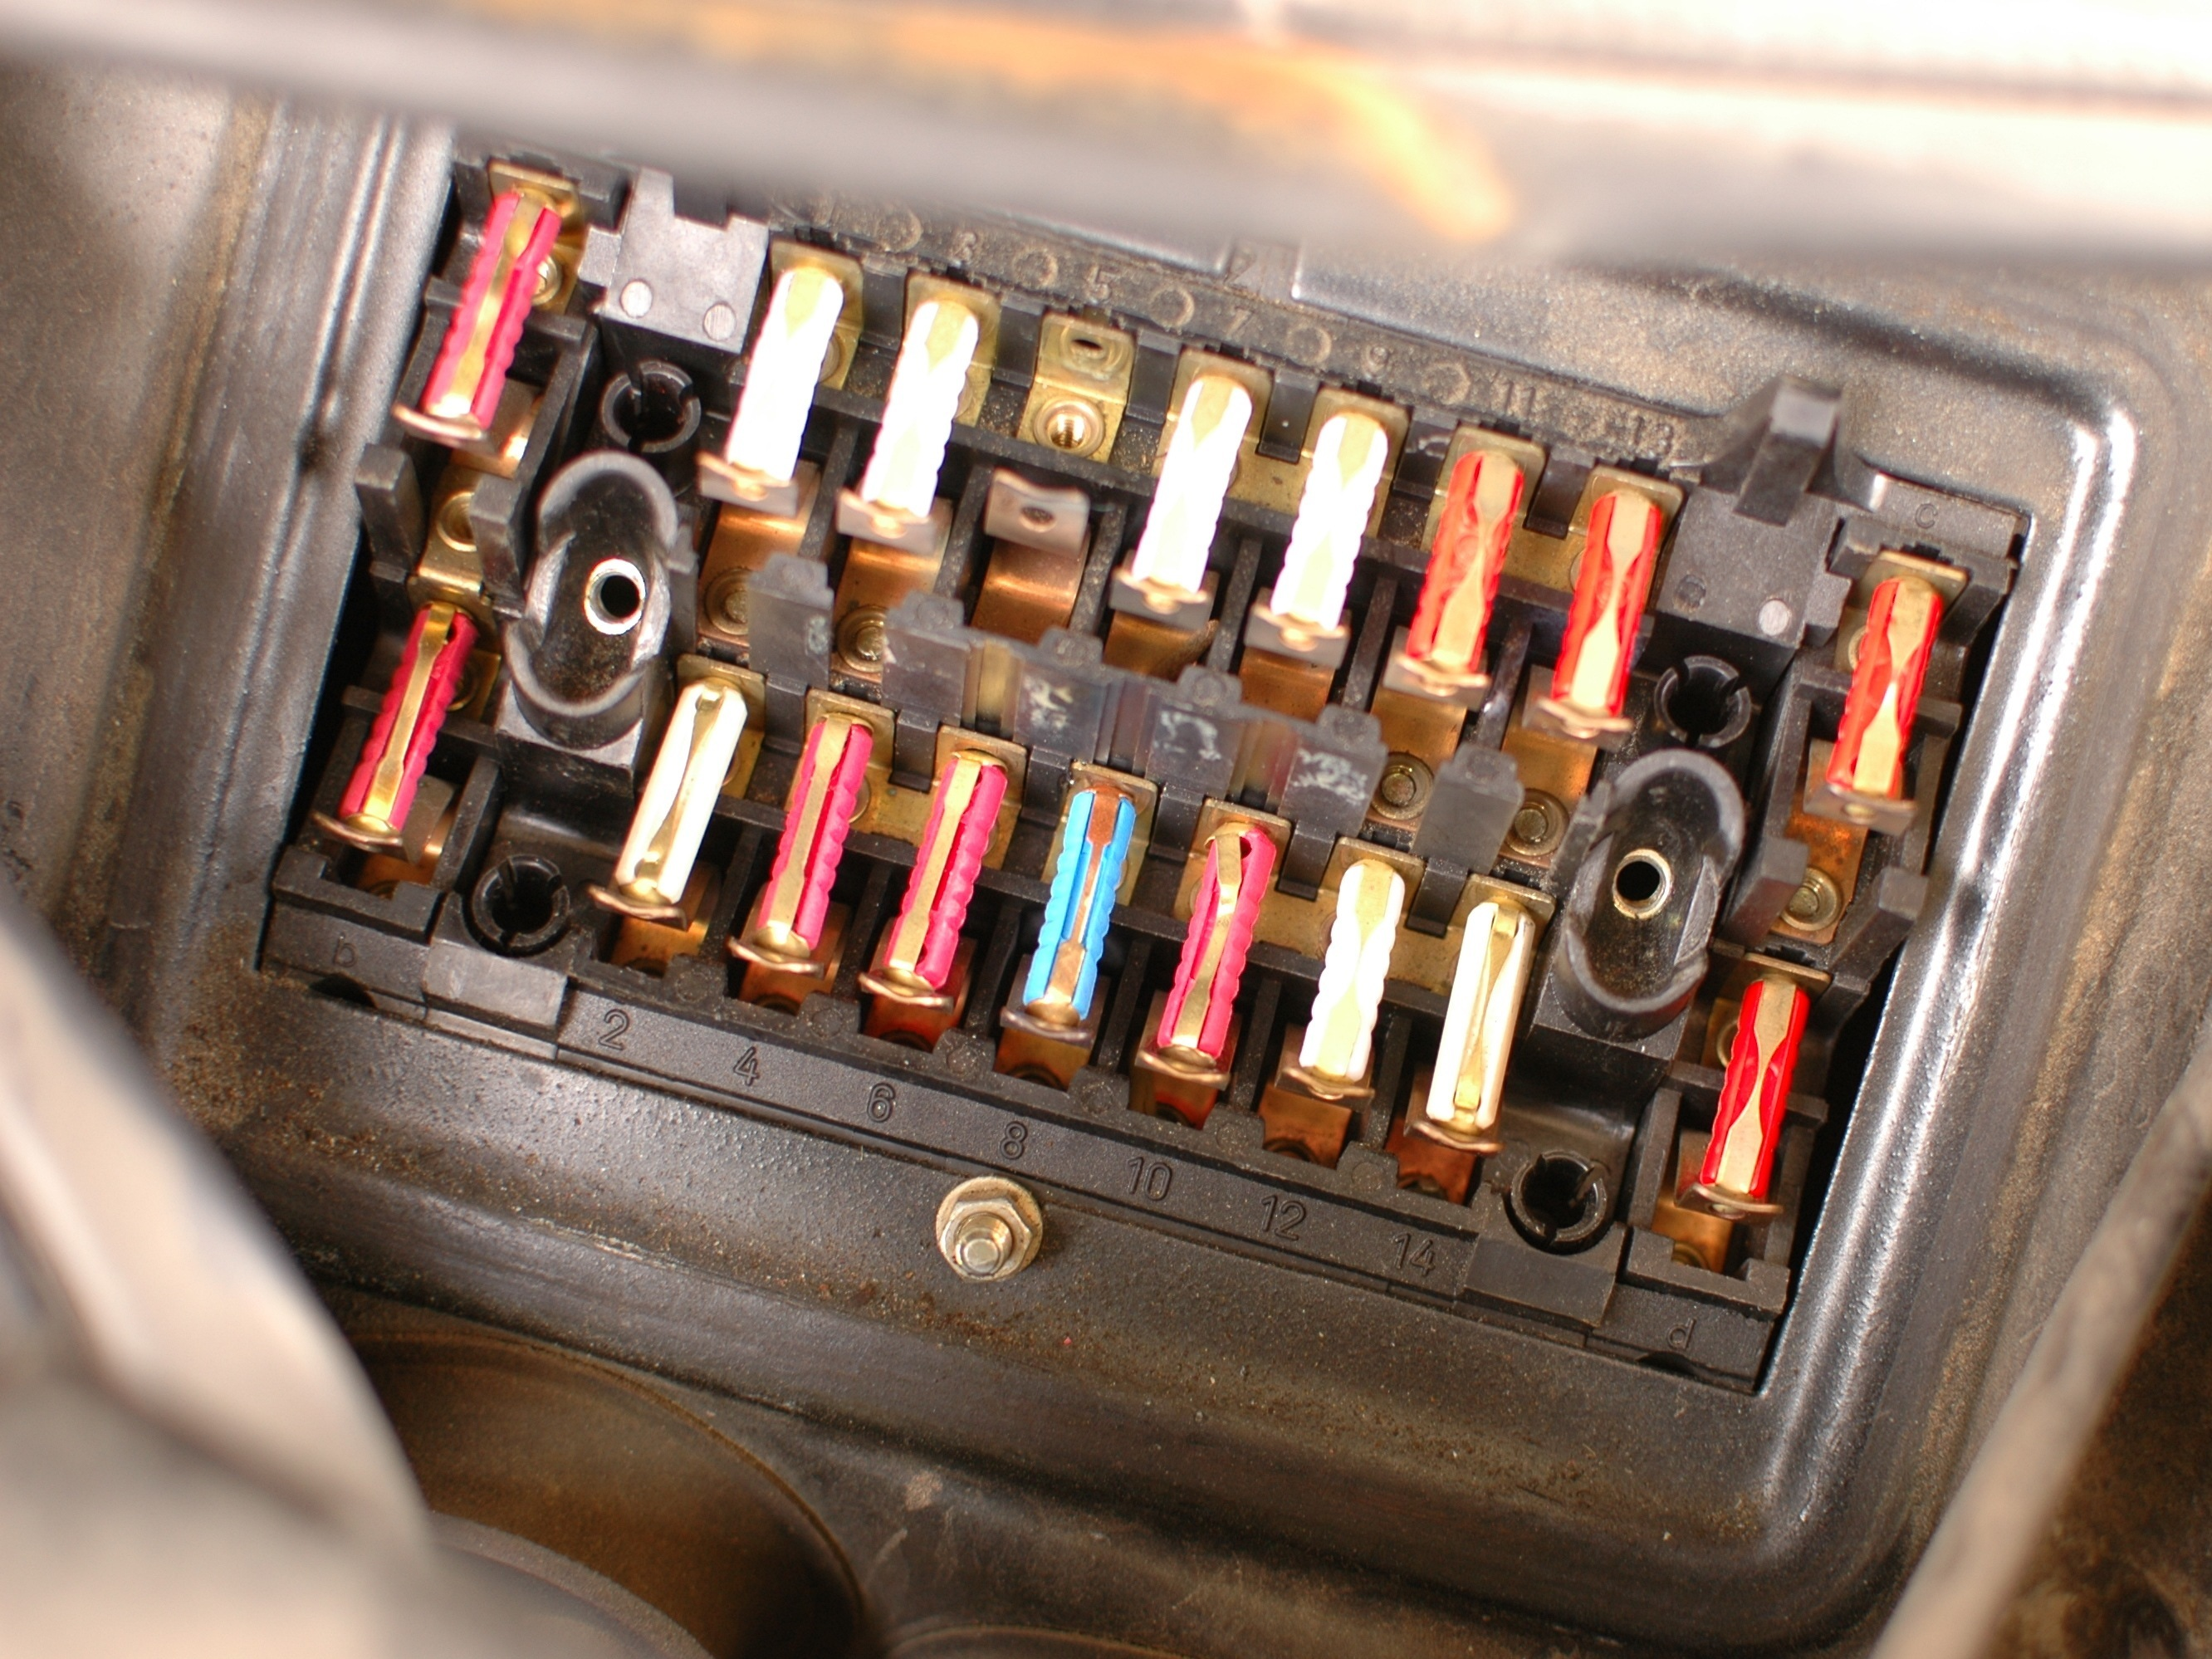 AfYAfmoCaMTVU2ap how to check mercedes w123 fuses ifixit 1978 Mercedes 450SEL at virtualis.co